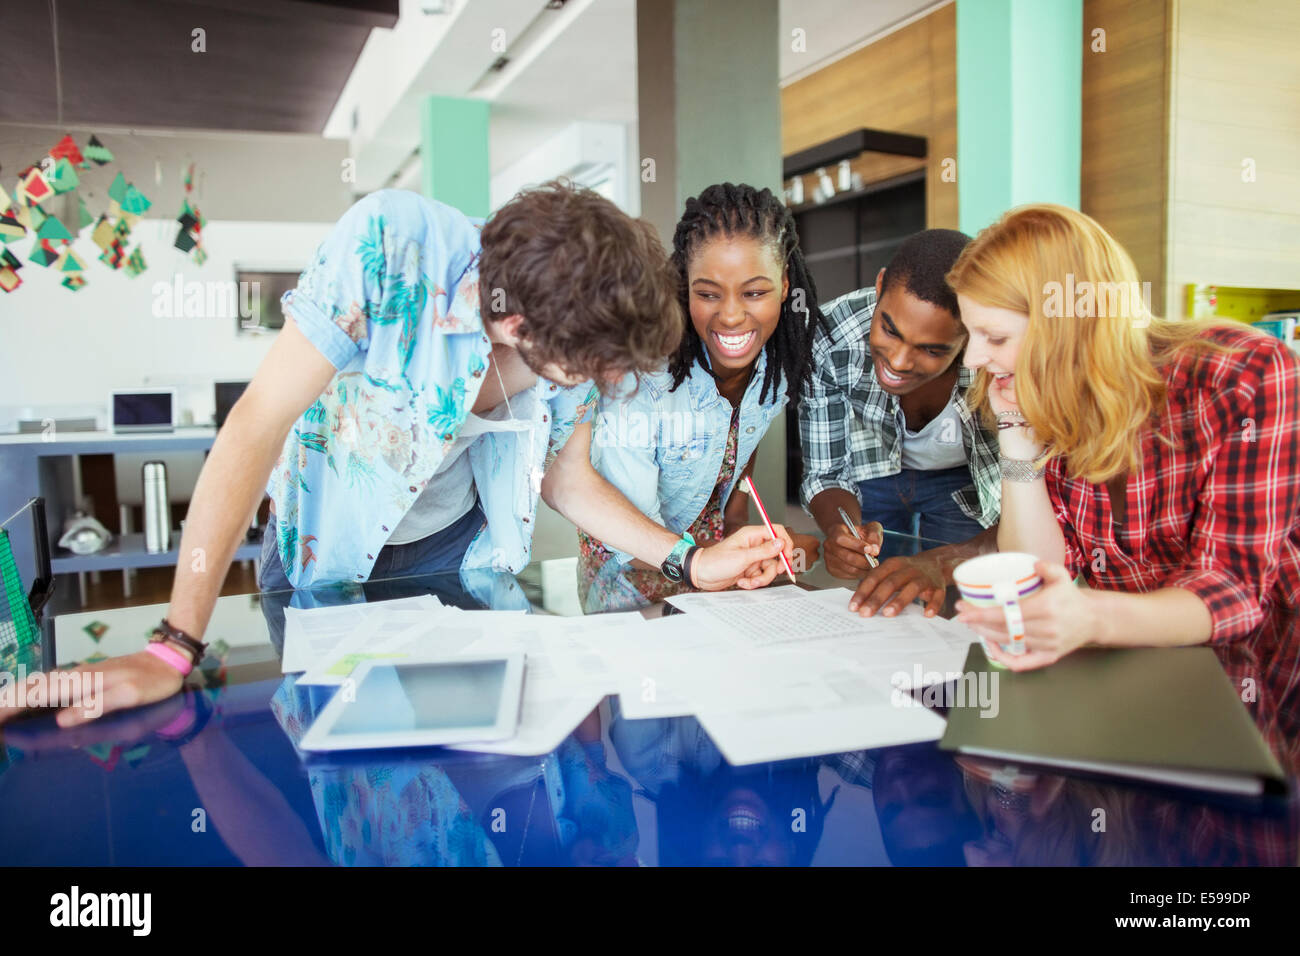 People working together in cafe - Stock Image